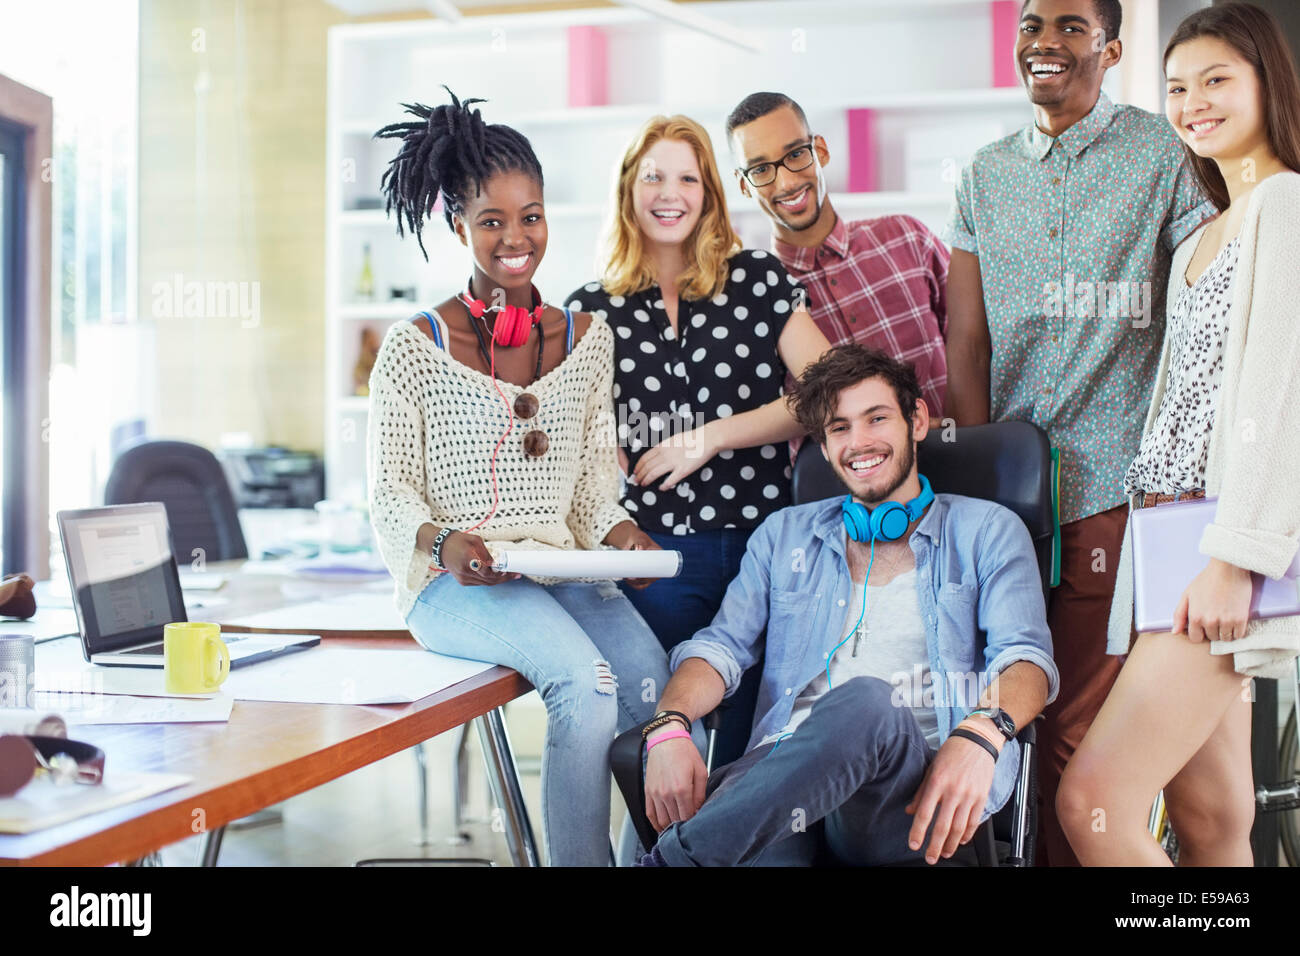 People smiling in office Photo Stock